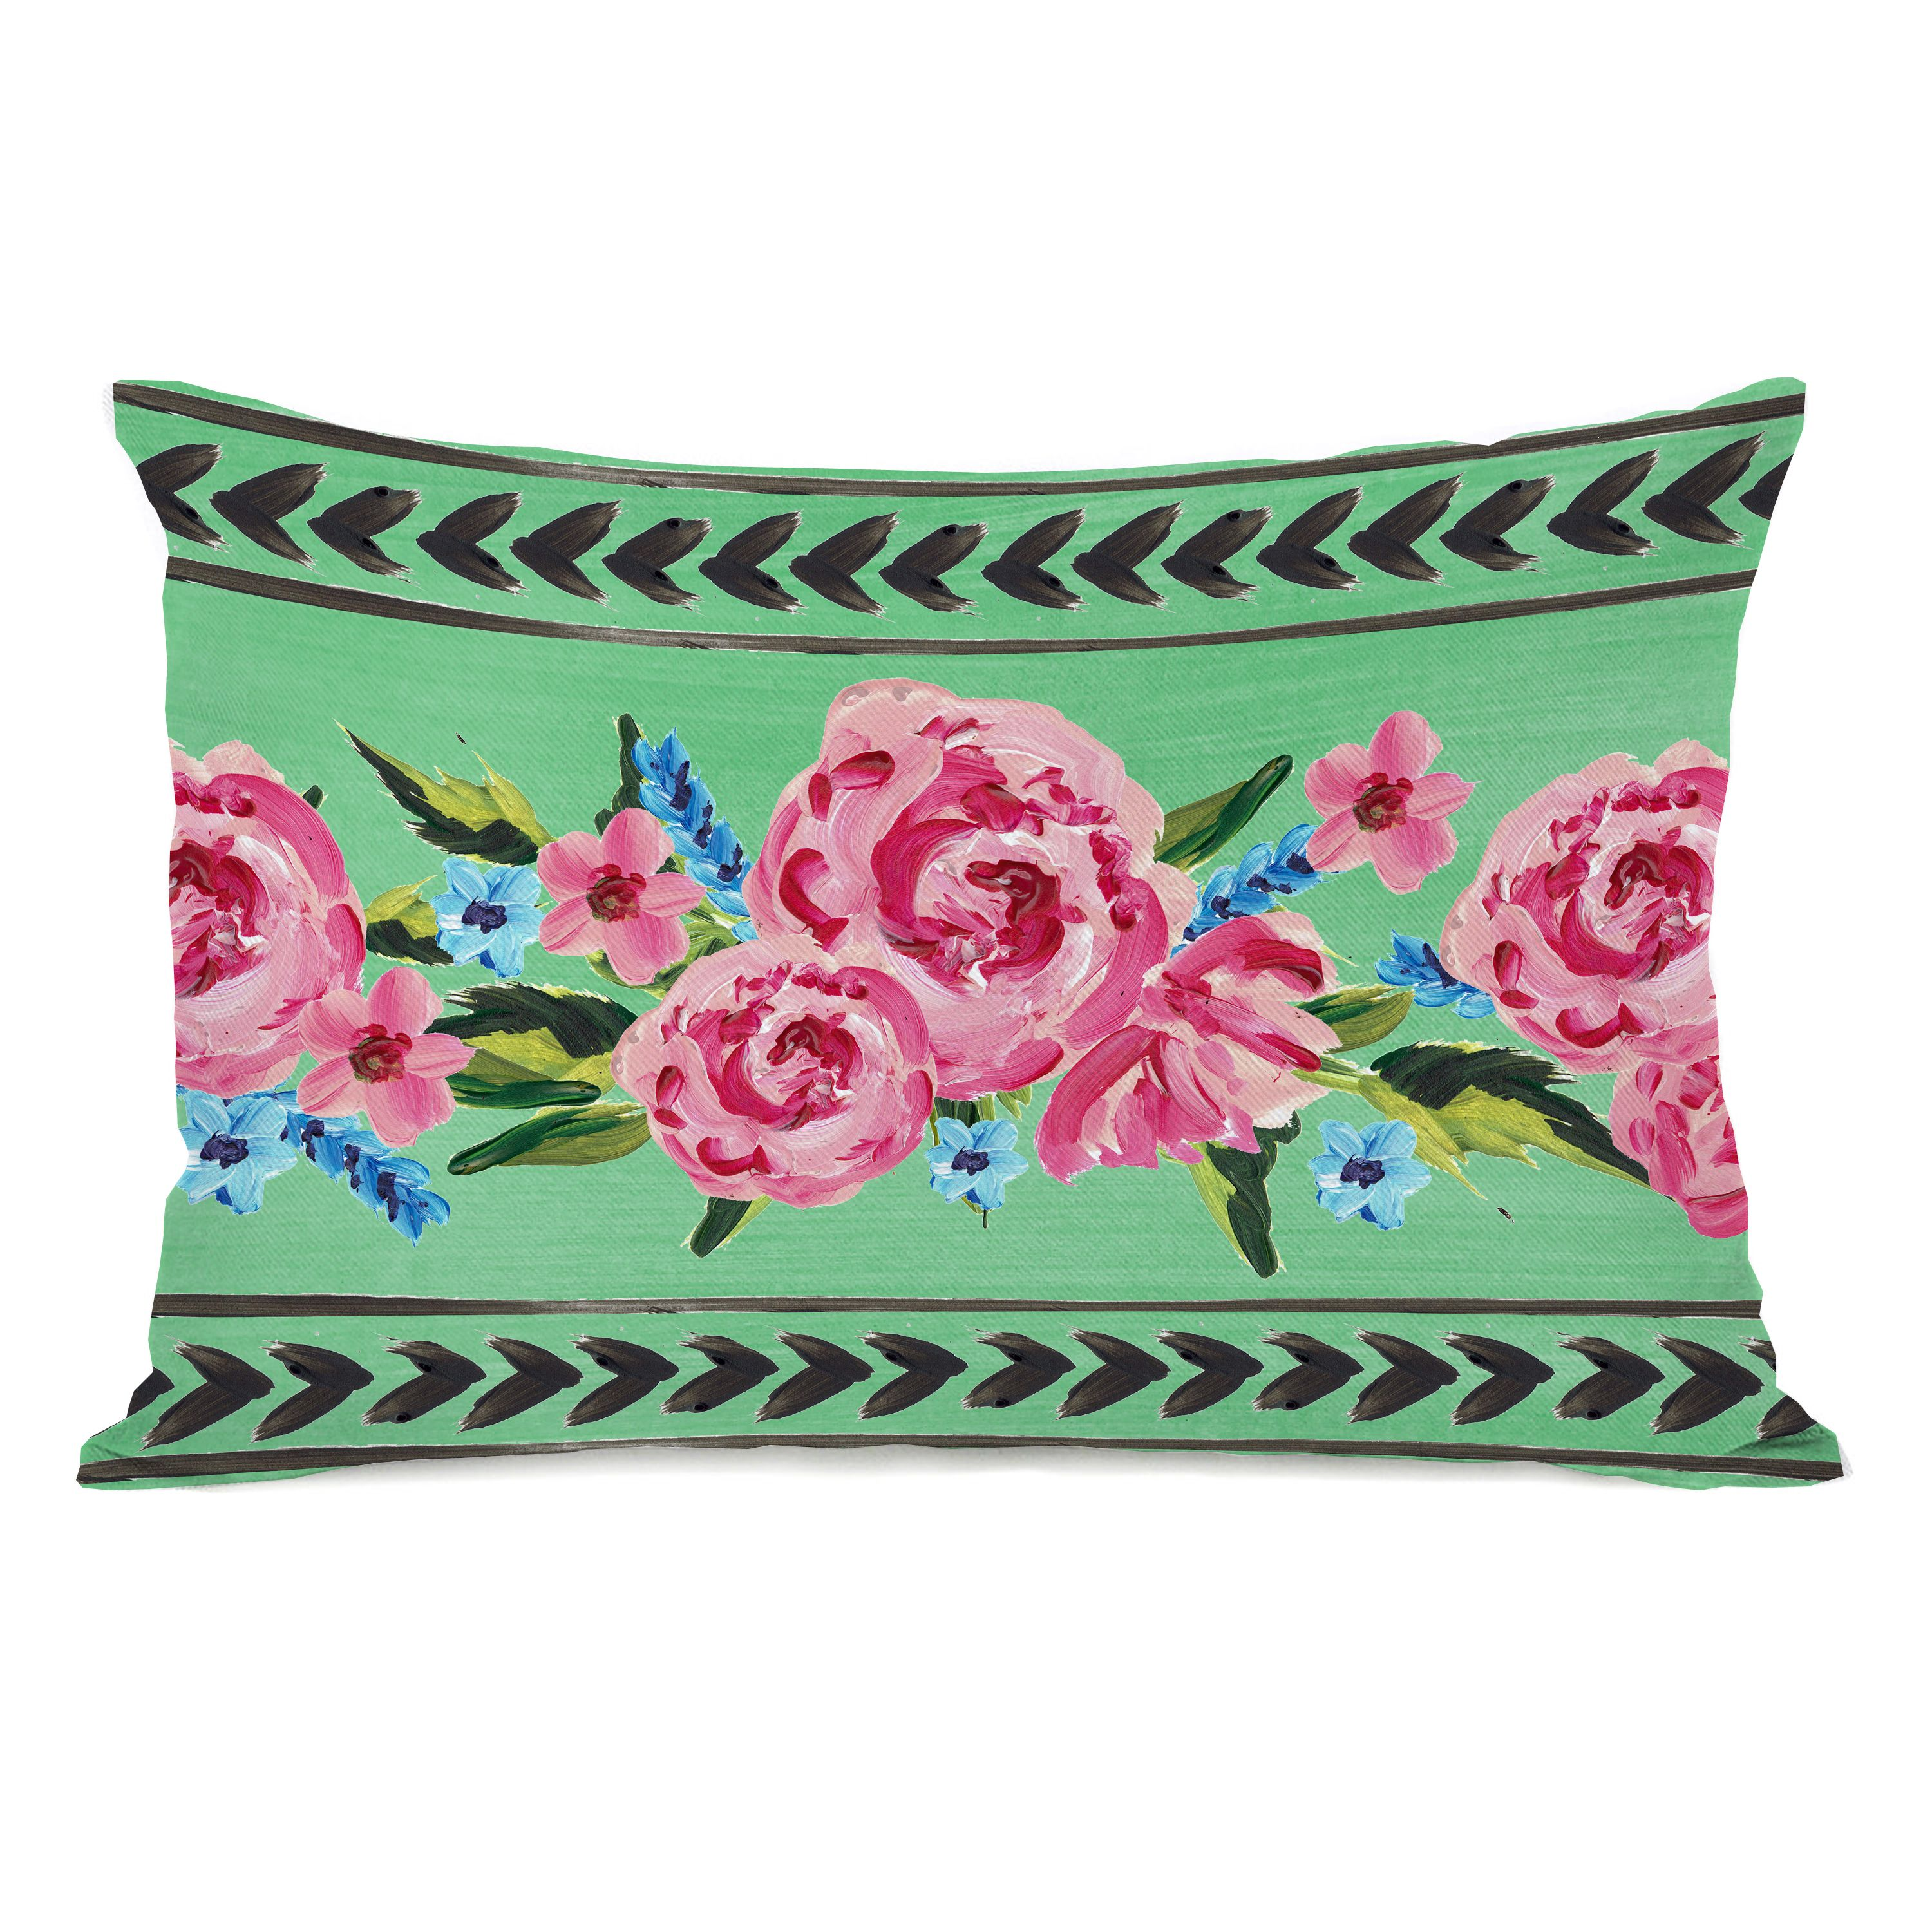 Jessica Floral - Green 14x20 Pillow by Timree